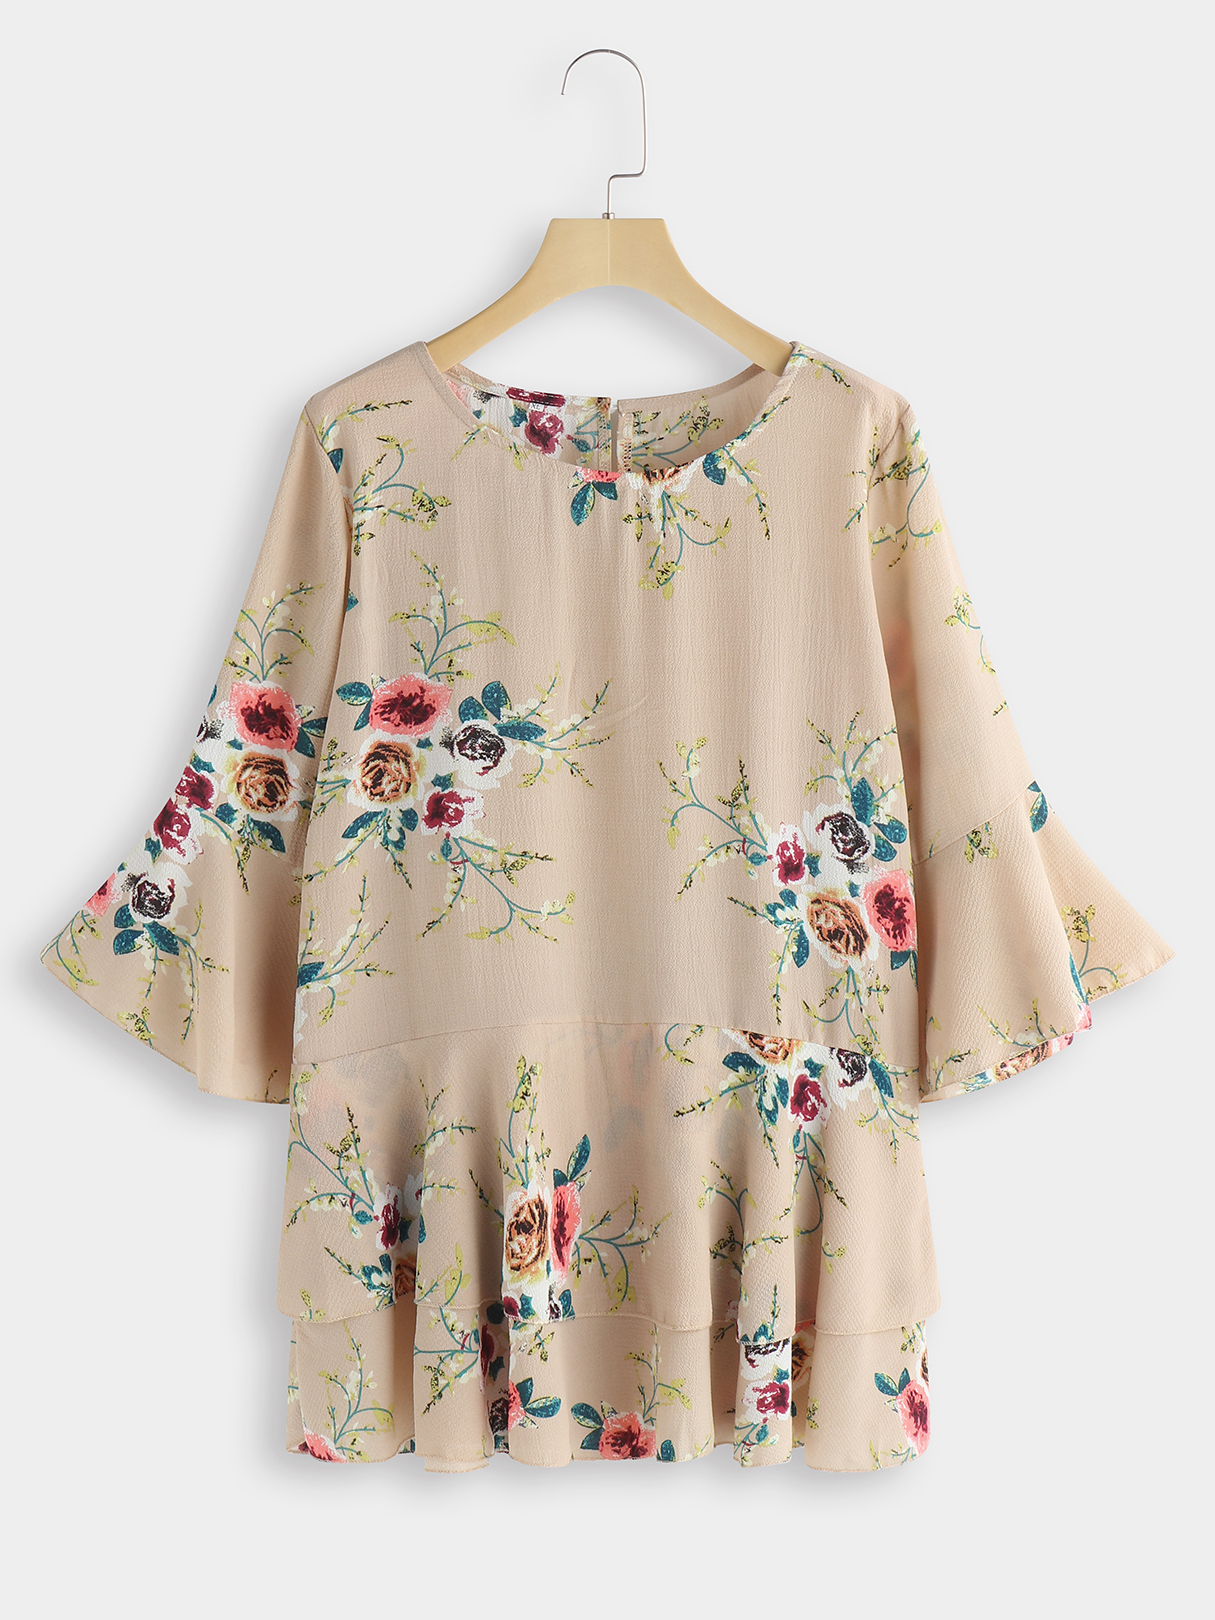 Plus Size Khaki Floral Print Bell Sleeves Blouse, Multi